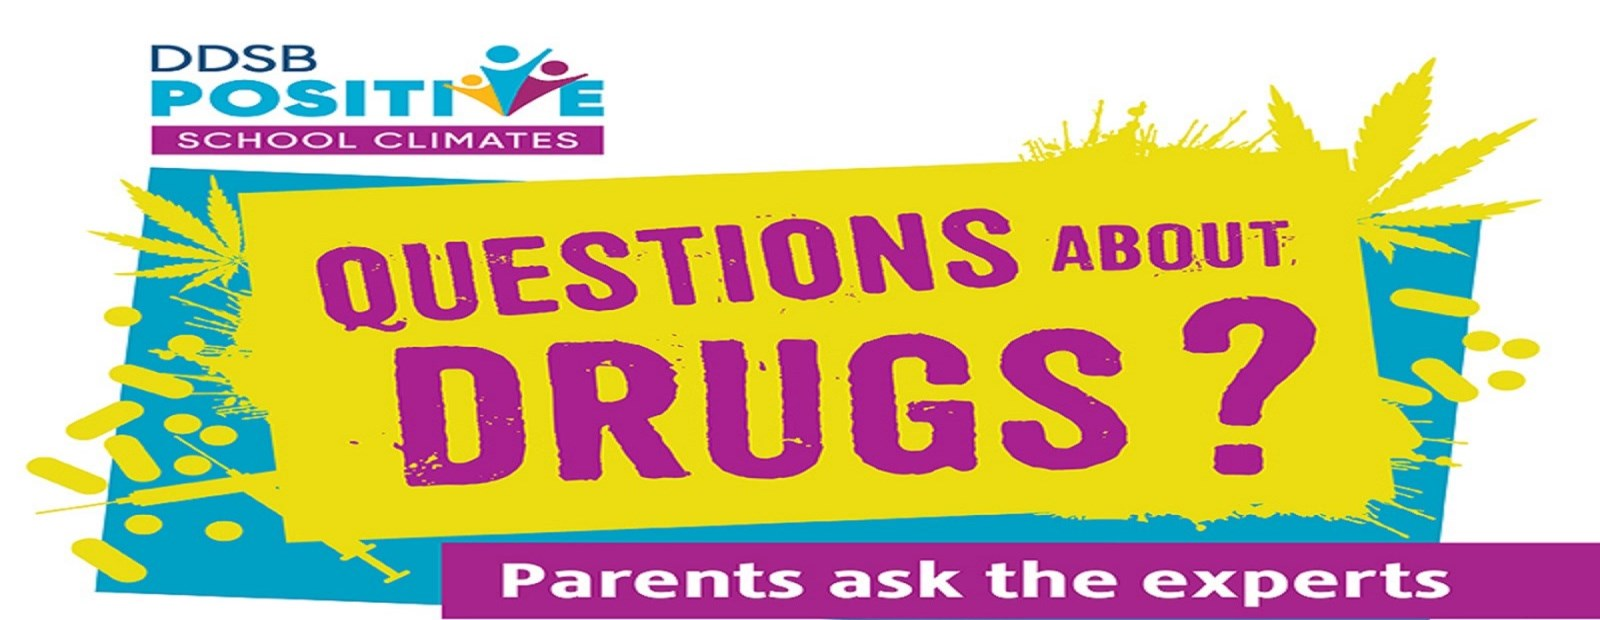 Questions About Drugs promotional poster